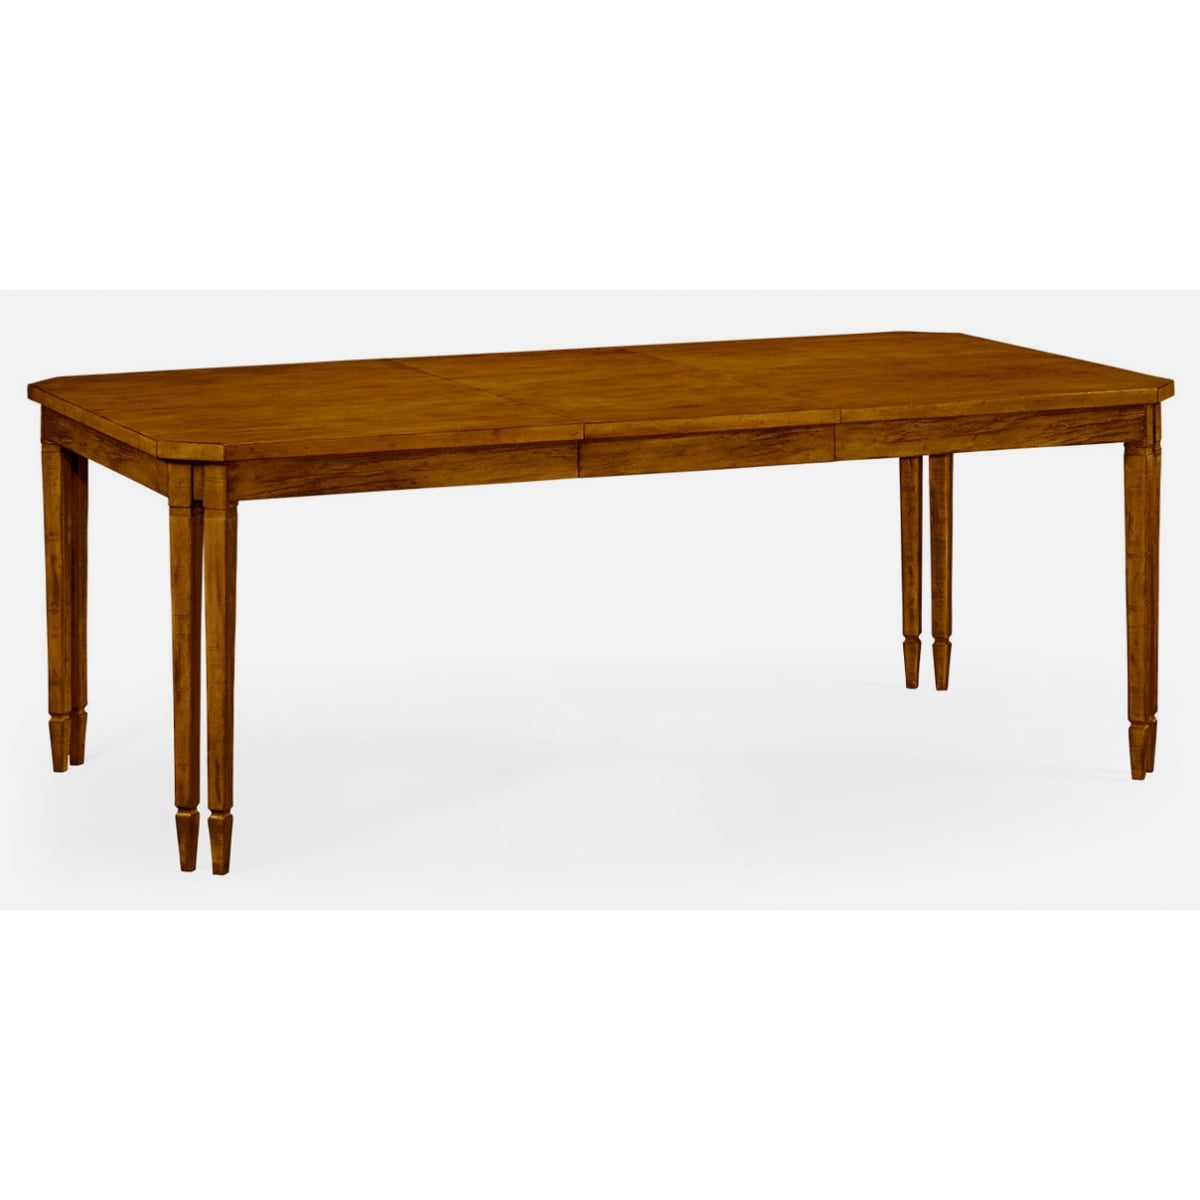 Walnut extending dining table 8 seater swanky interiors for 8 seater dining table